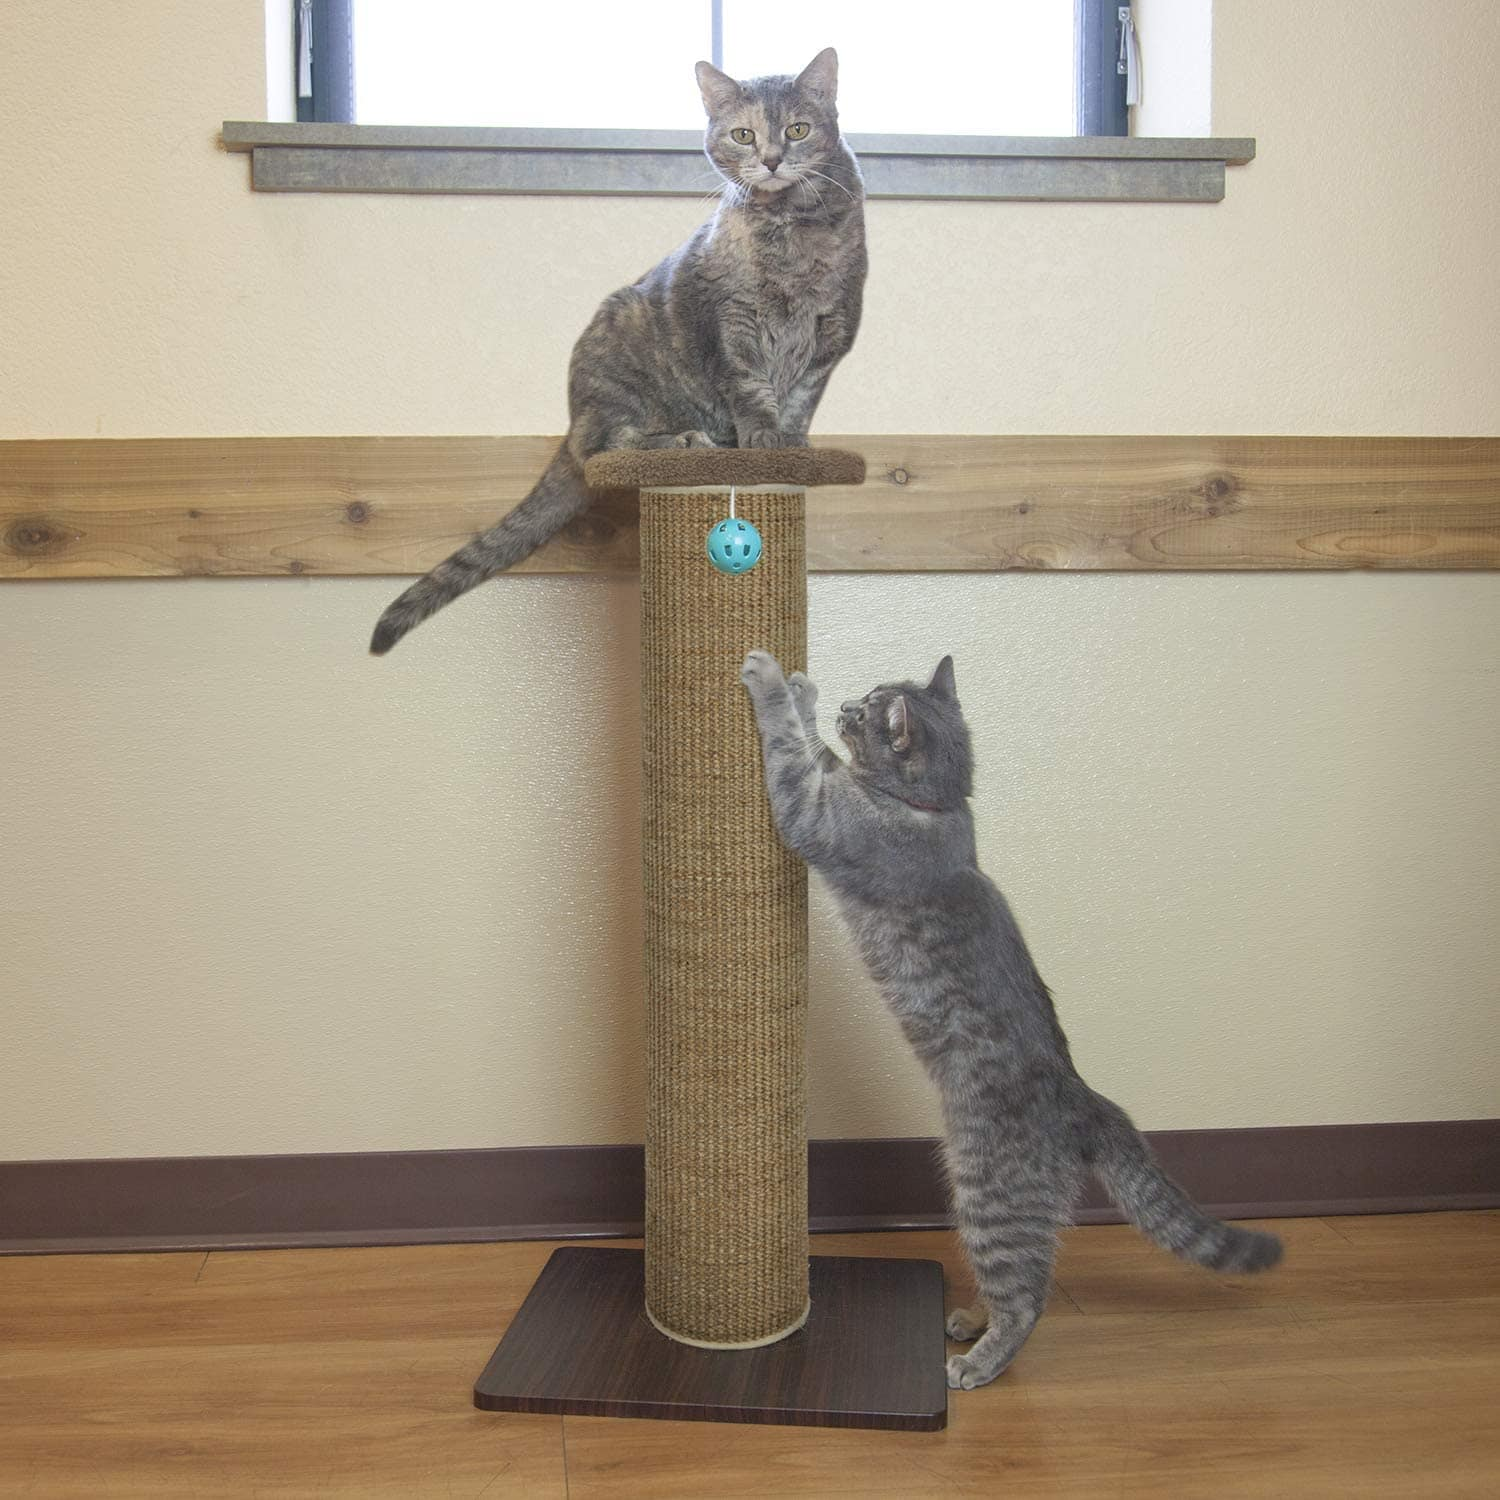 cats in Kitty City Premium Scratching Post